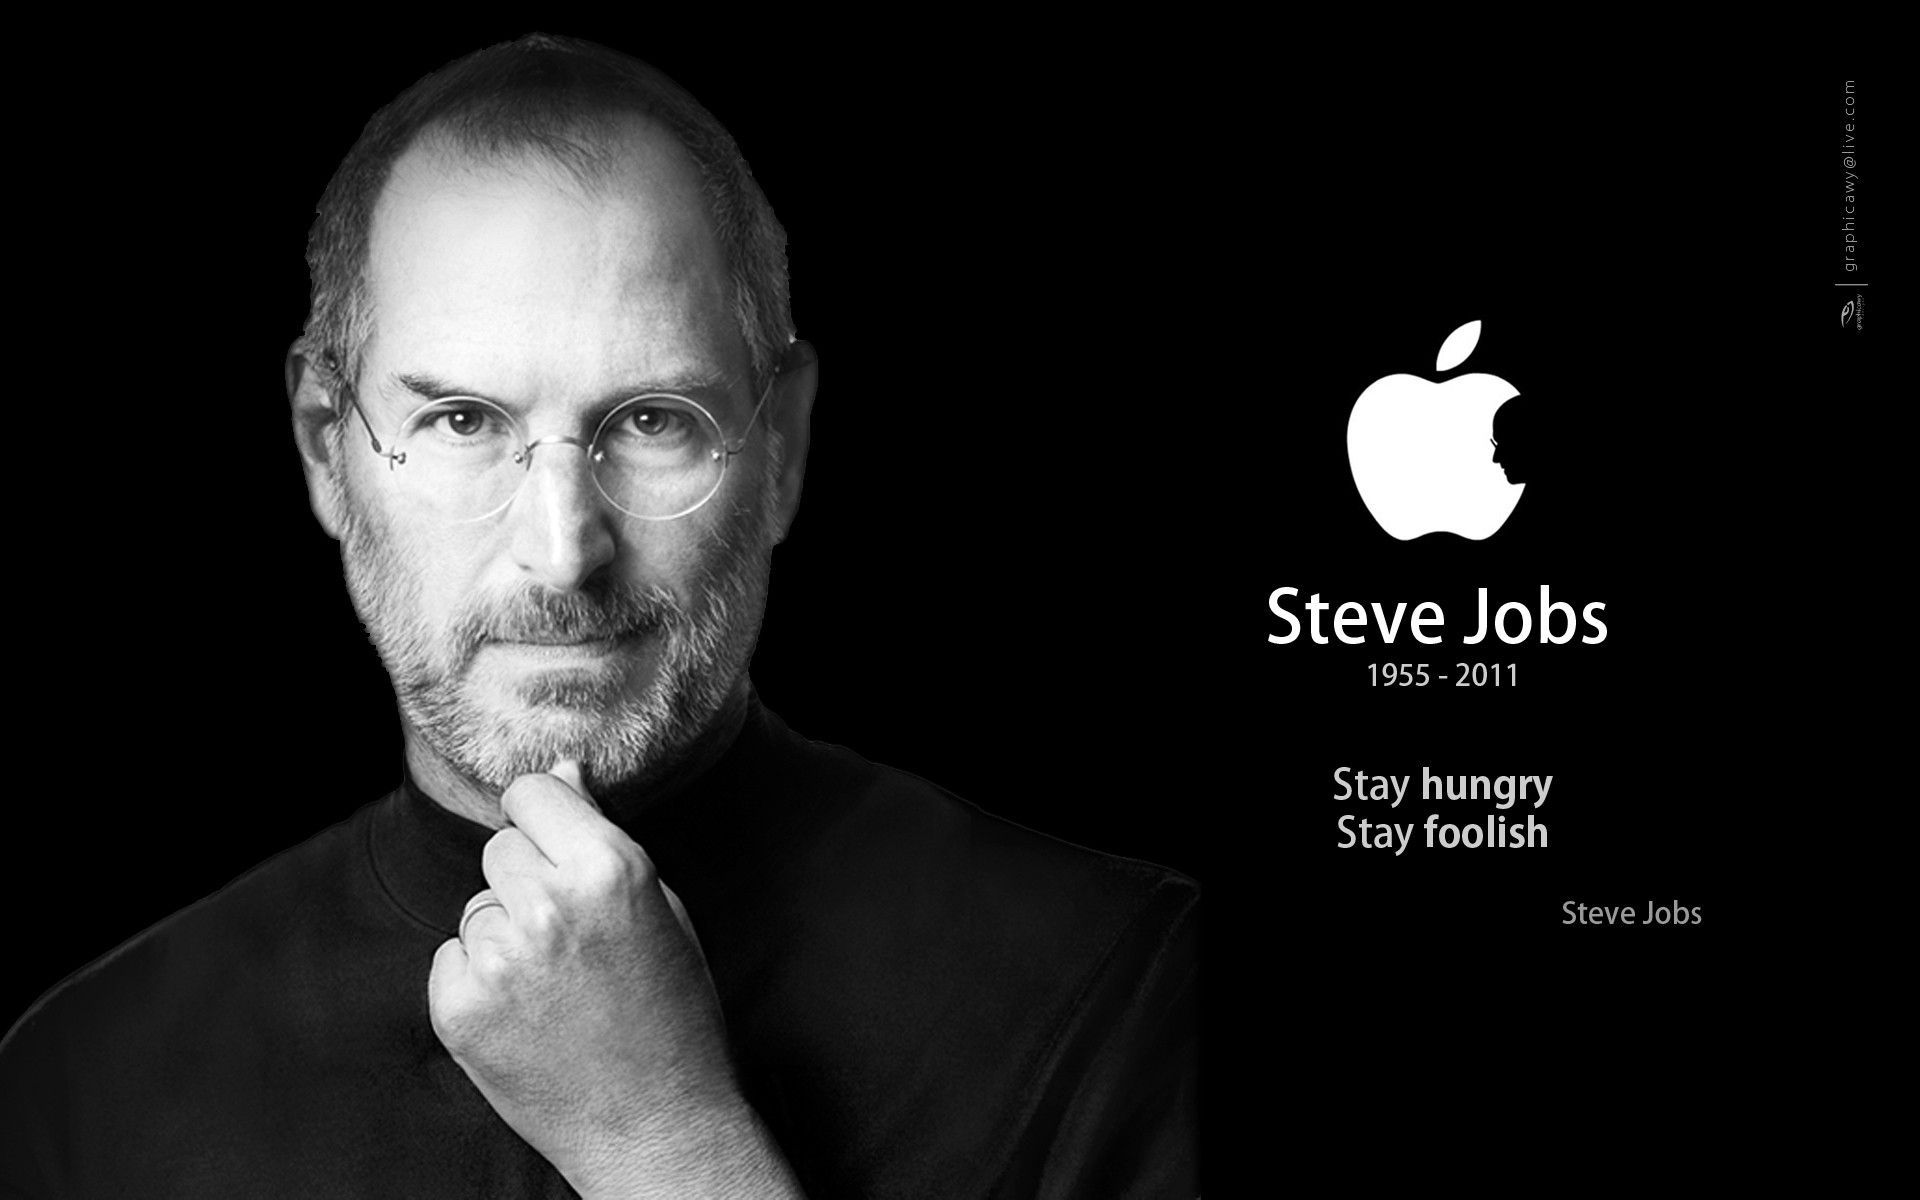 steve paul jobs Steve paul jobs quotes - 1 your work is going to fill a large part of your life, and the only way to be truly satisfied is to do what you believe is great work and the only way to do great work is to love what you do if you havent found it yet, keep looking dont settle as with all matters of the heart, you'll know when you find it.